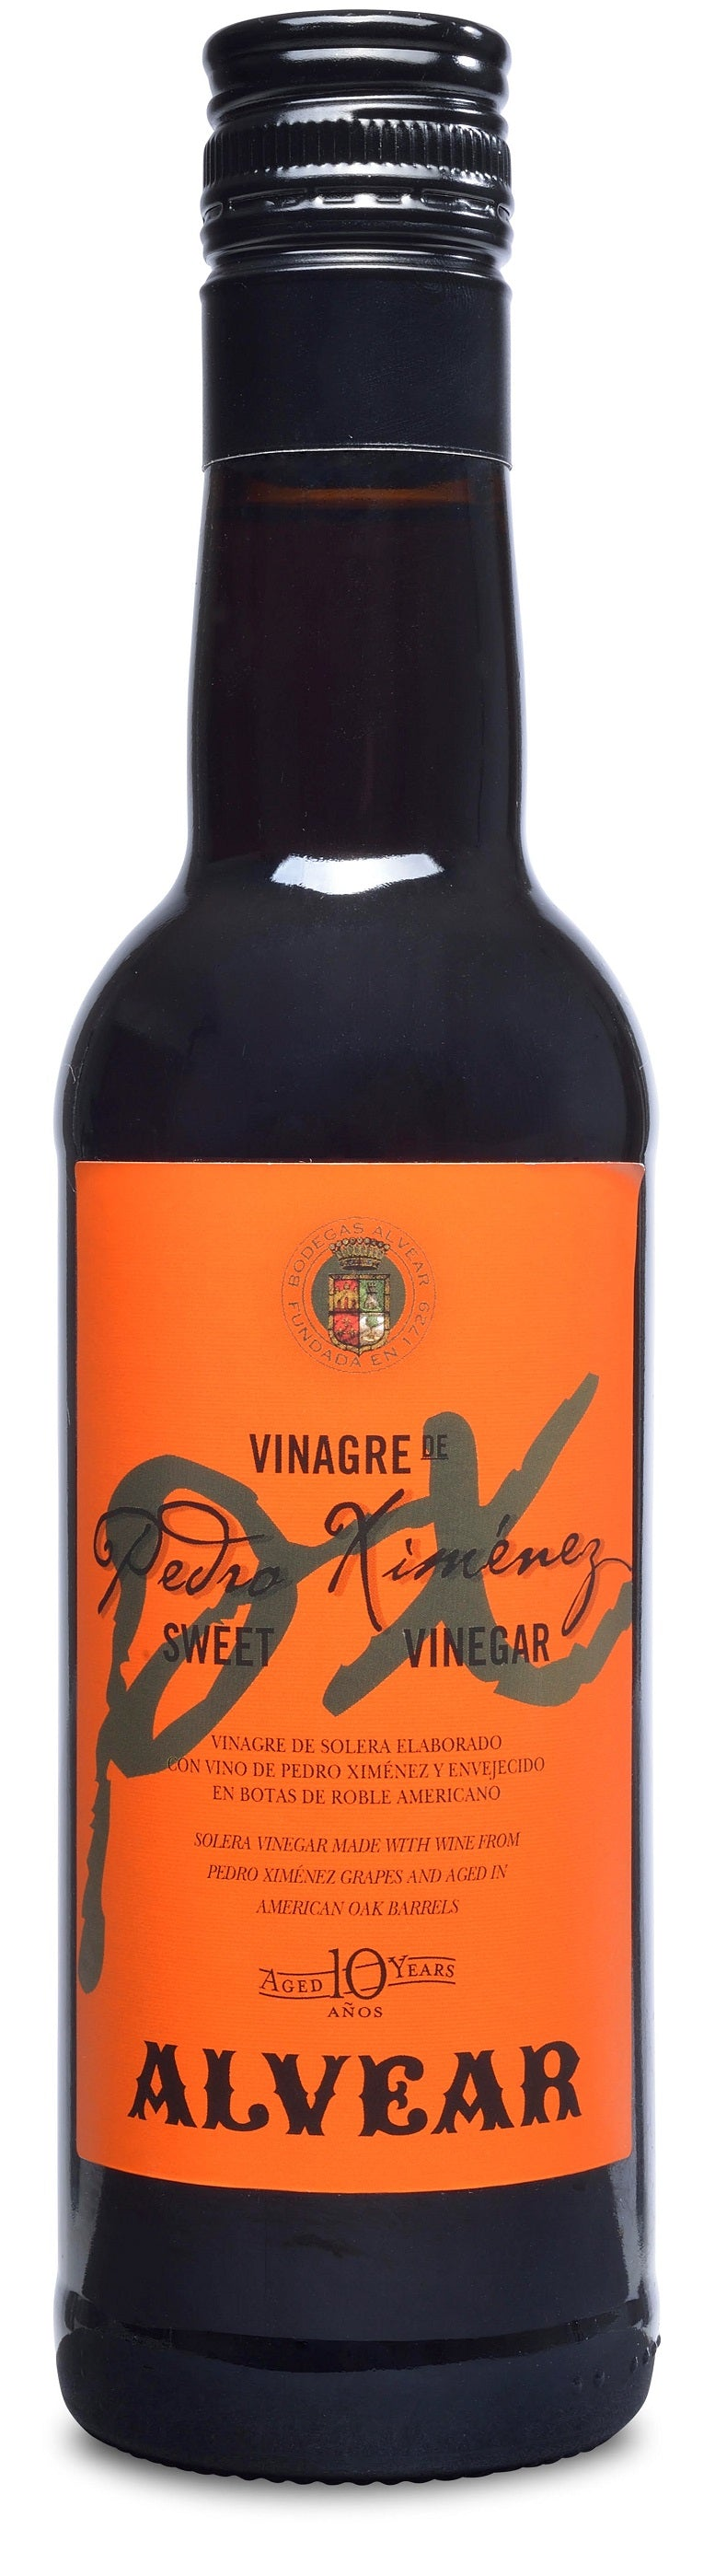 Alvear Pedro Ximenez Vinegar Sweet 10 Yr Spain 375 Ml